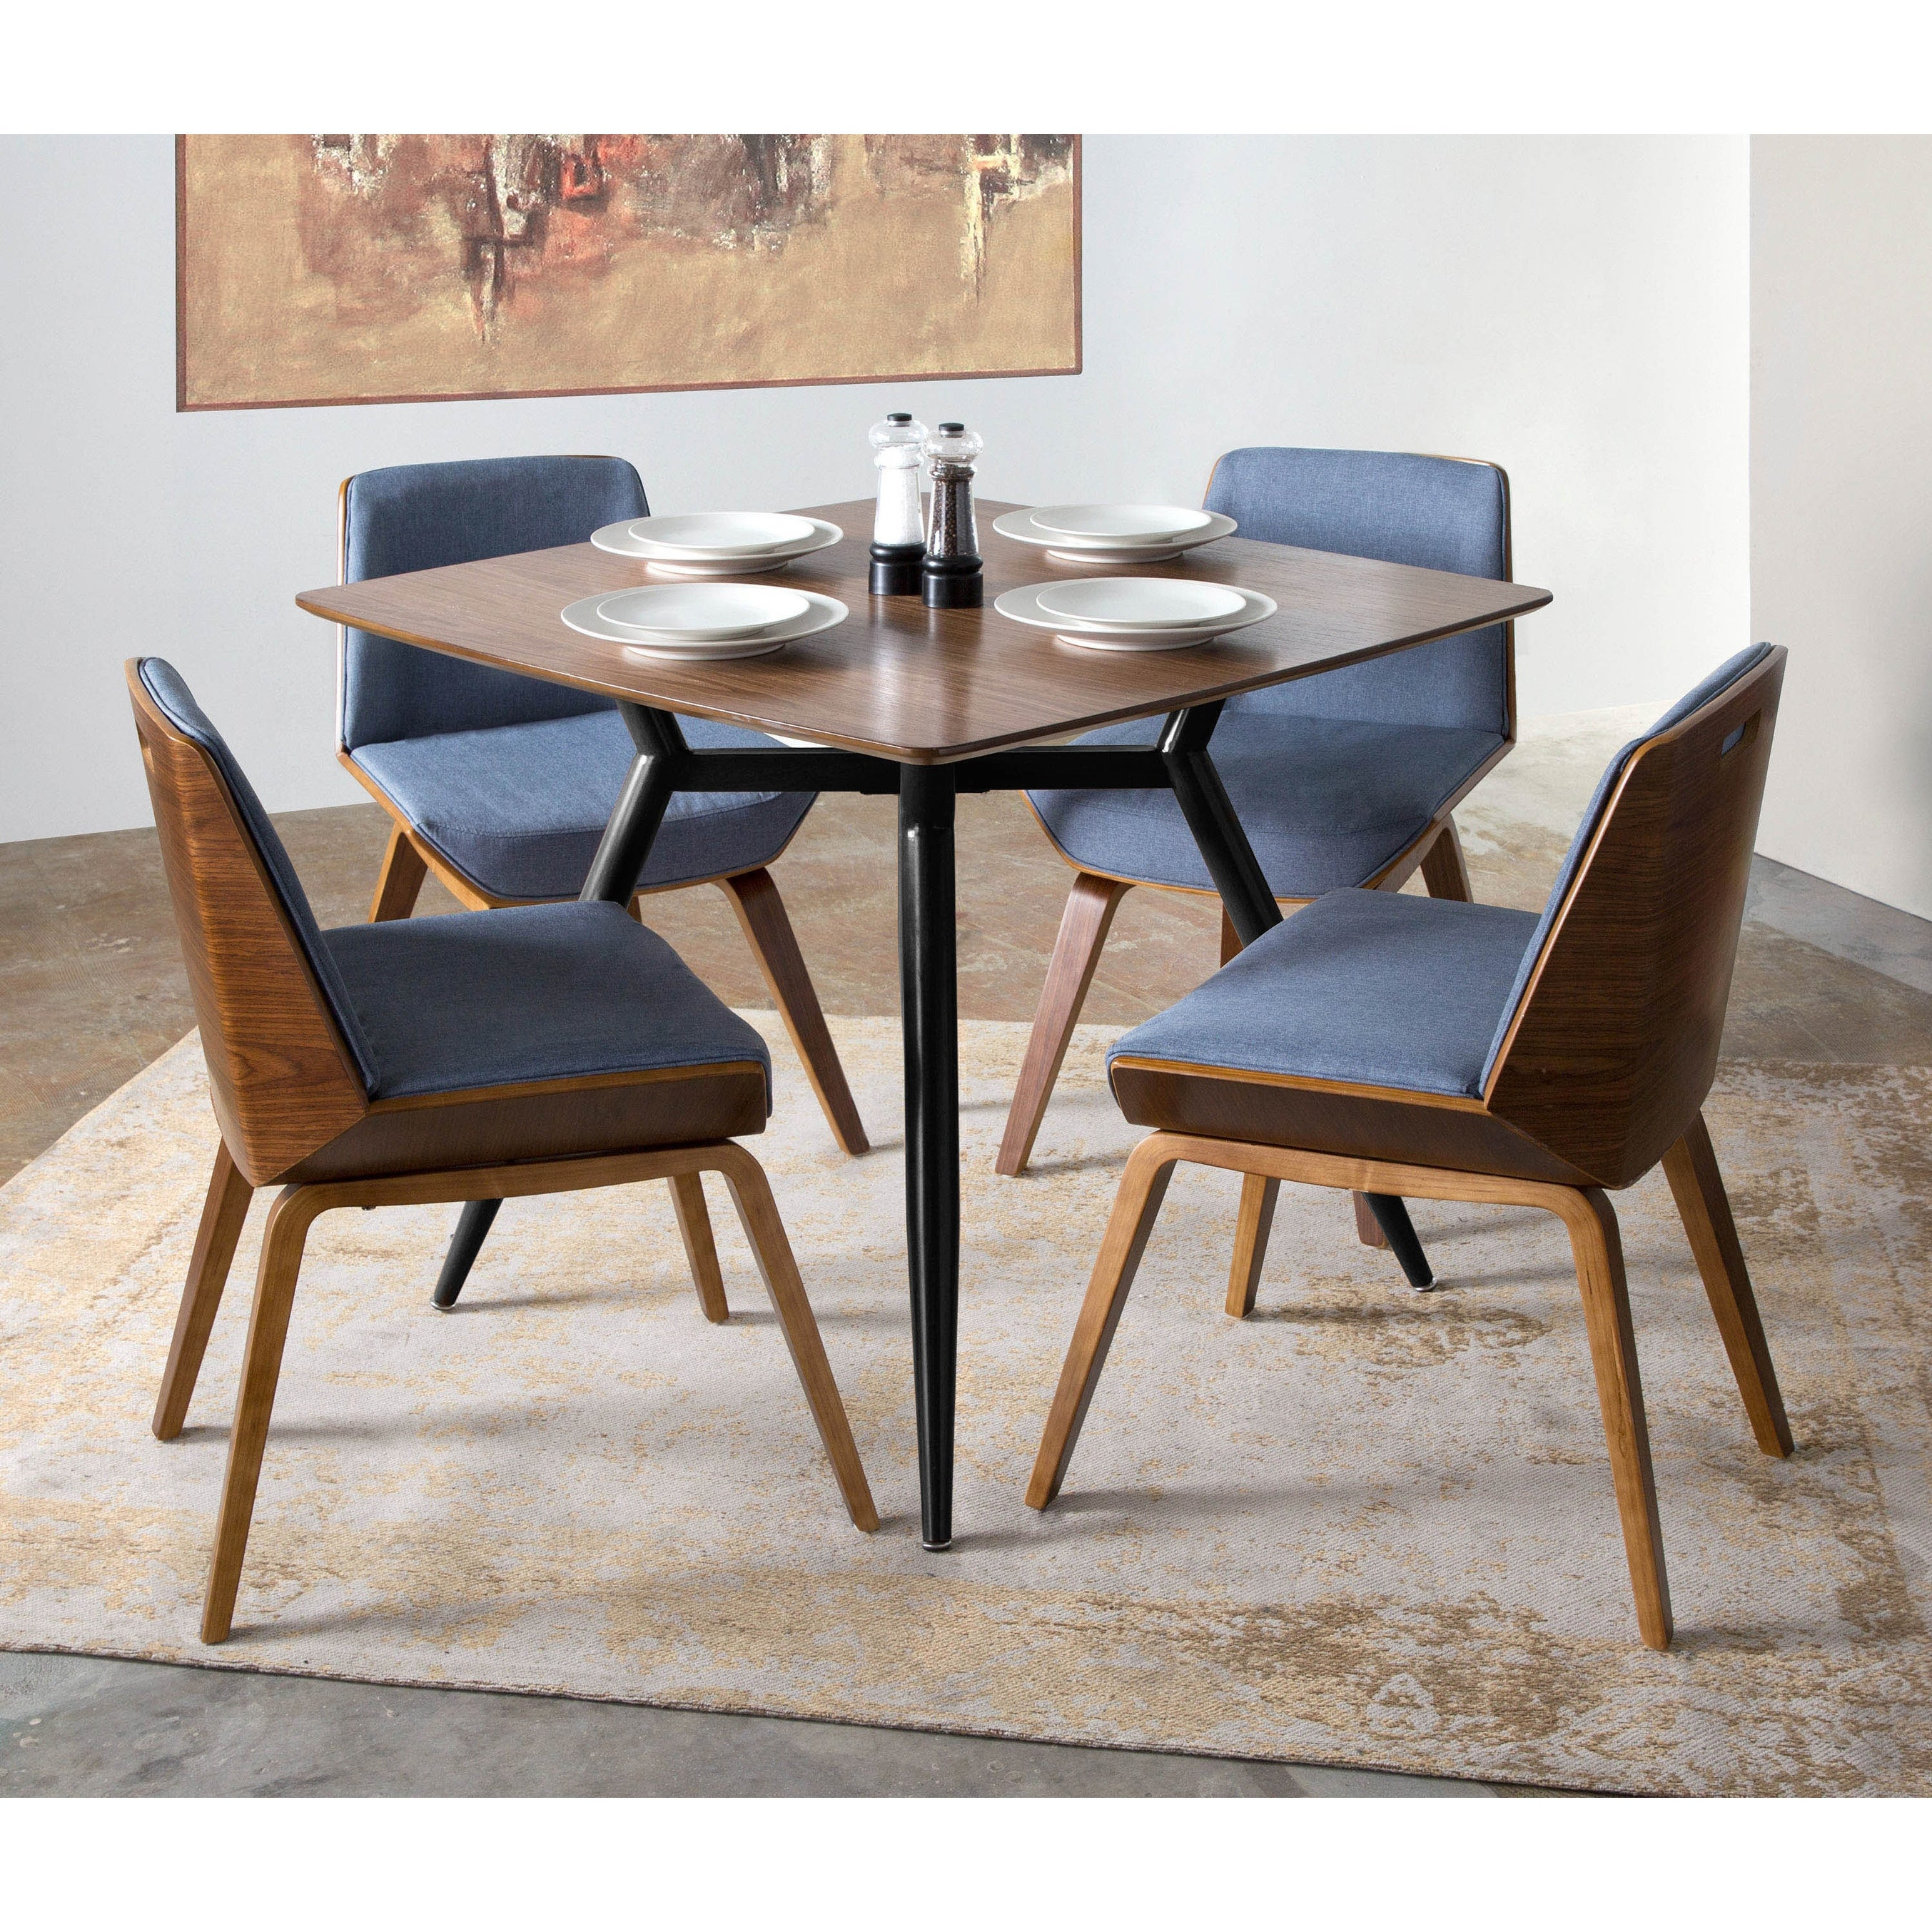 Shop Corazza Mid-Century Modern Dining/Accent Chair - Free Shipping ...